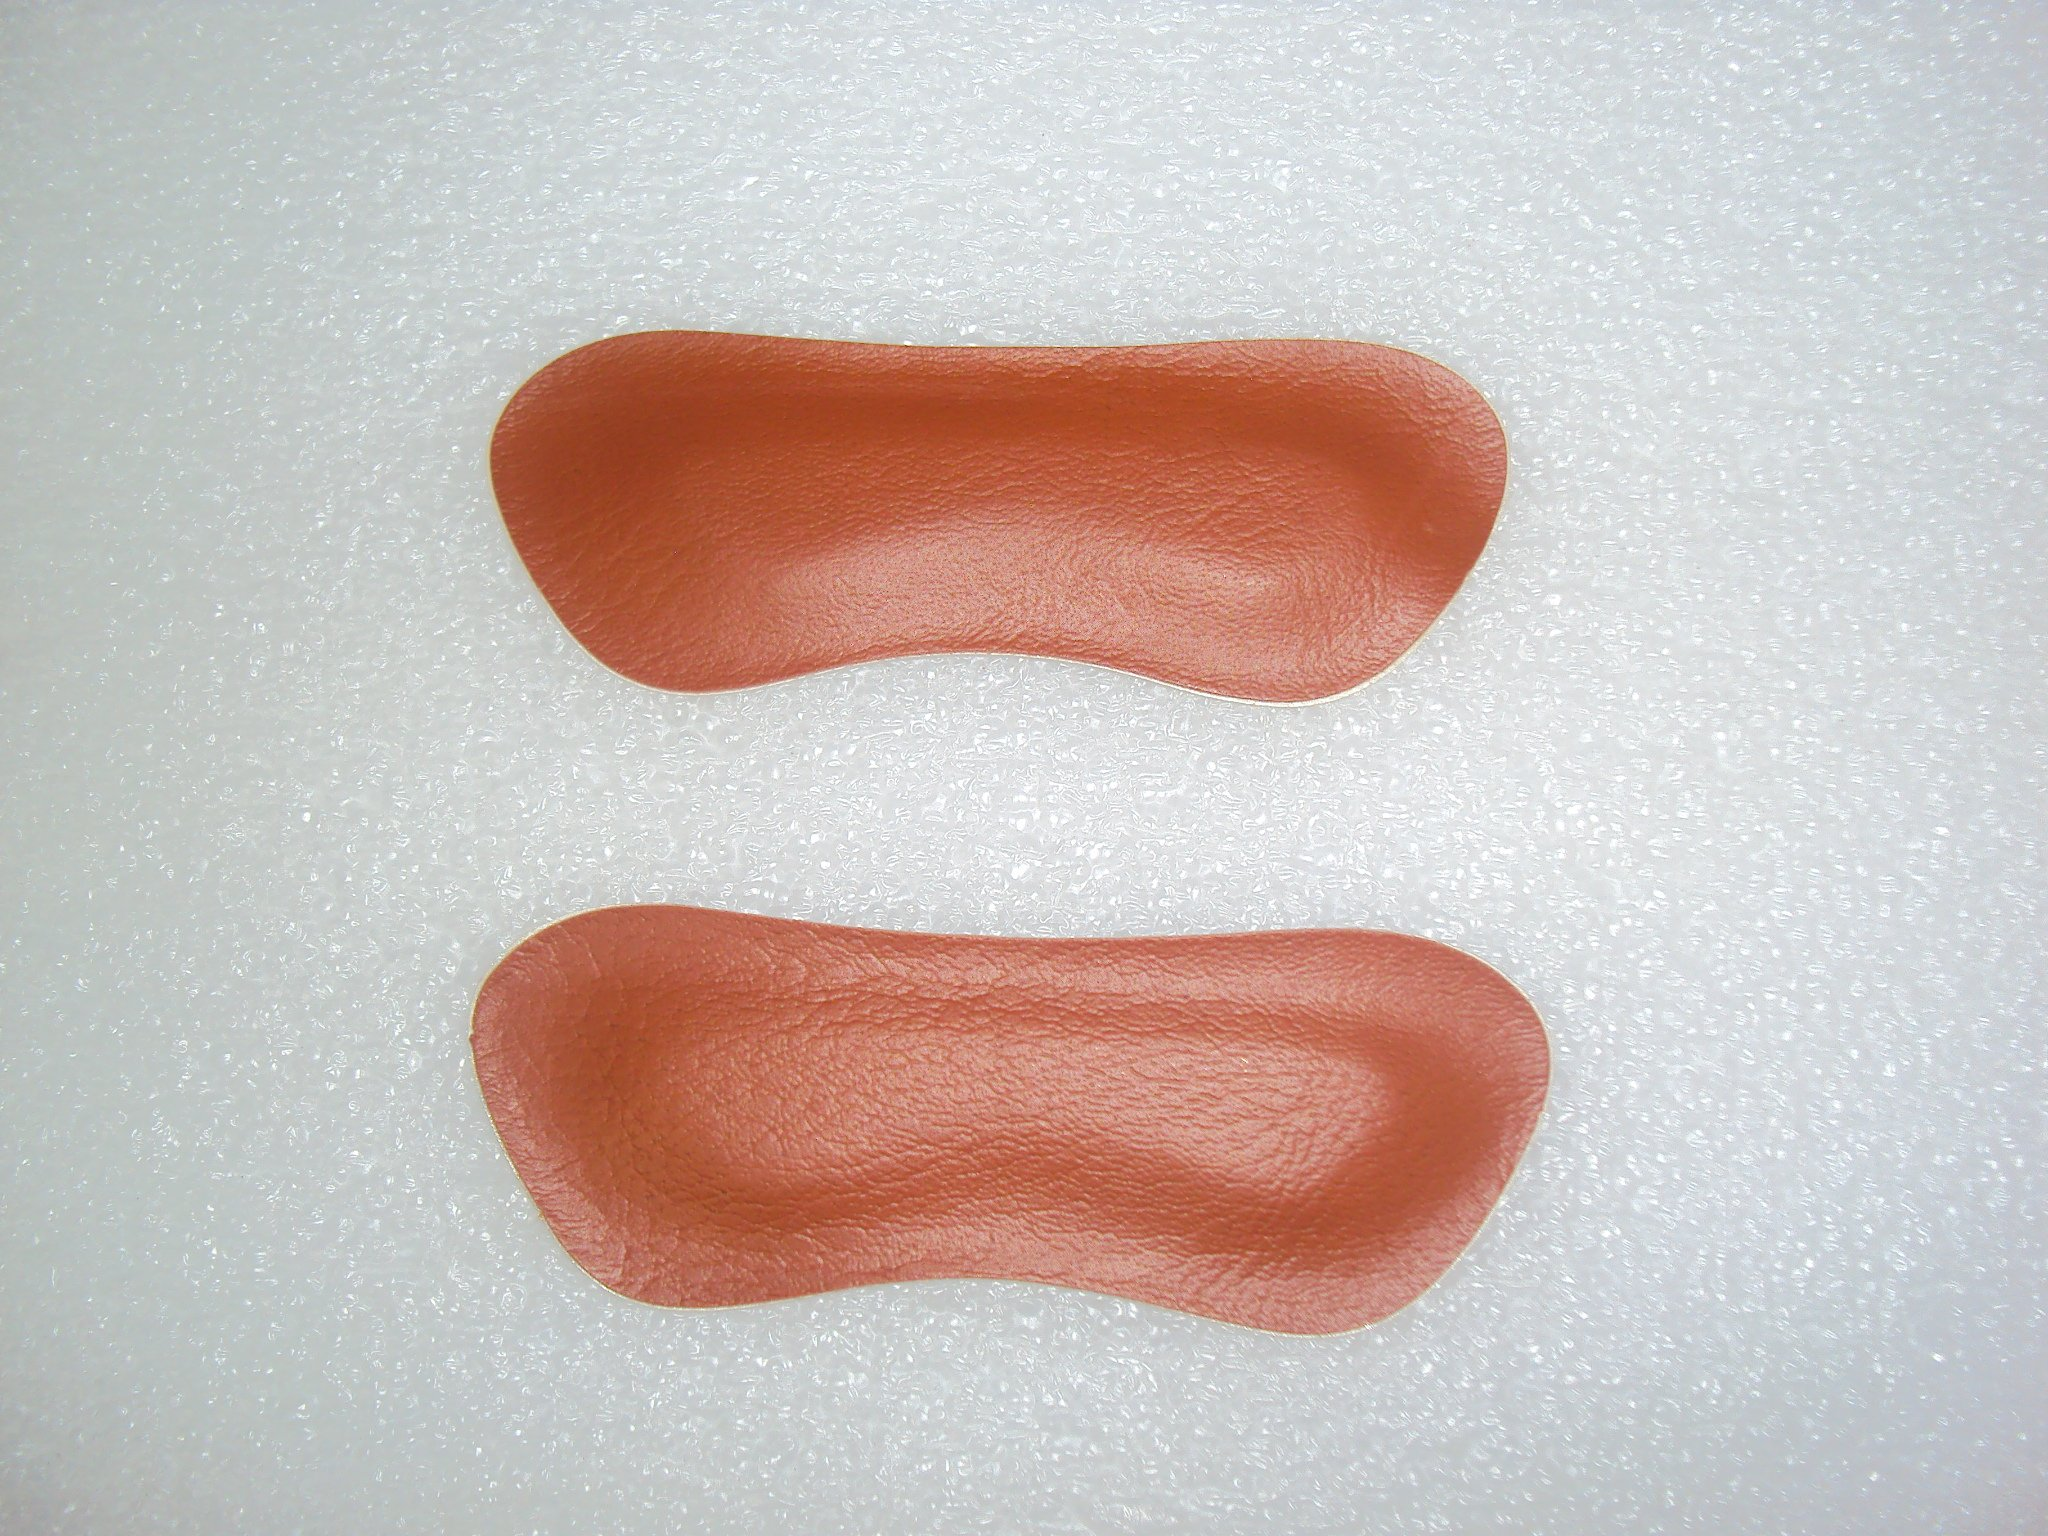 Brown Heel Back Pad Liner Insole Feet Cushion Protector Insole Liner